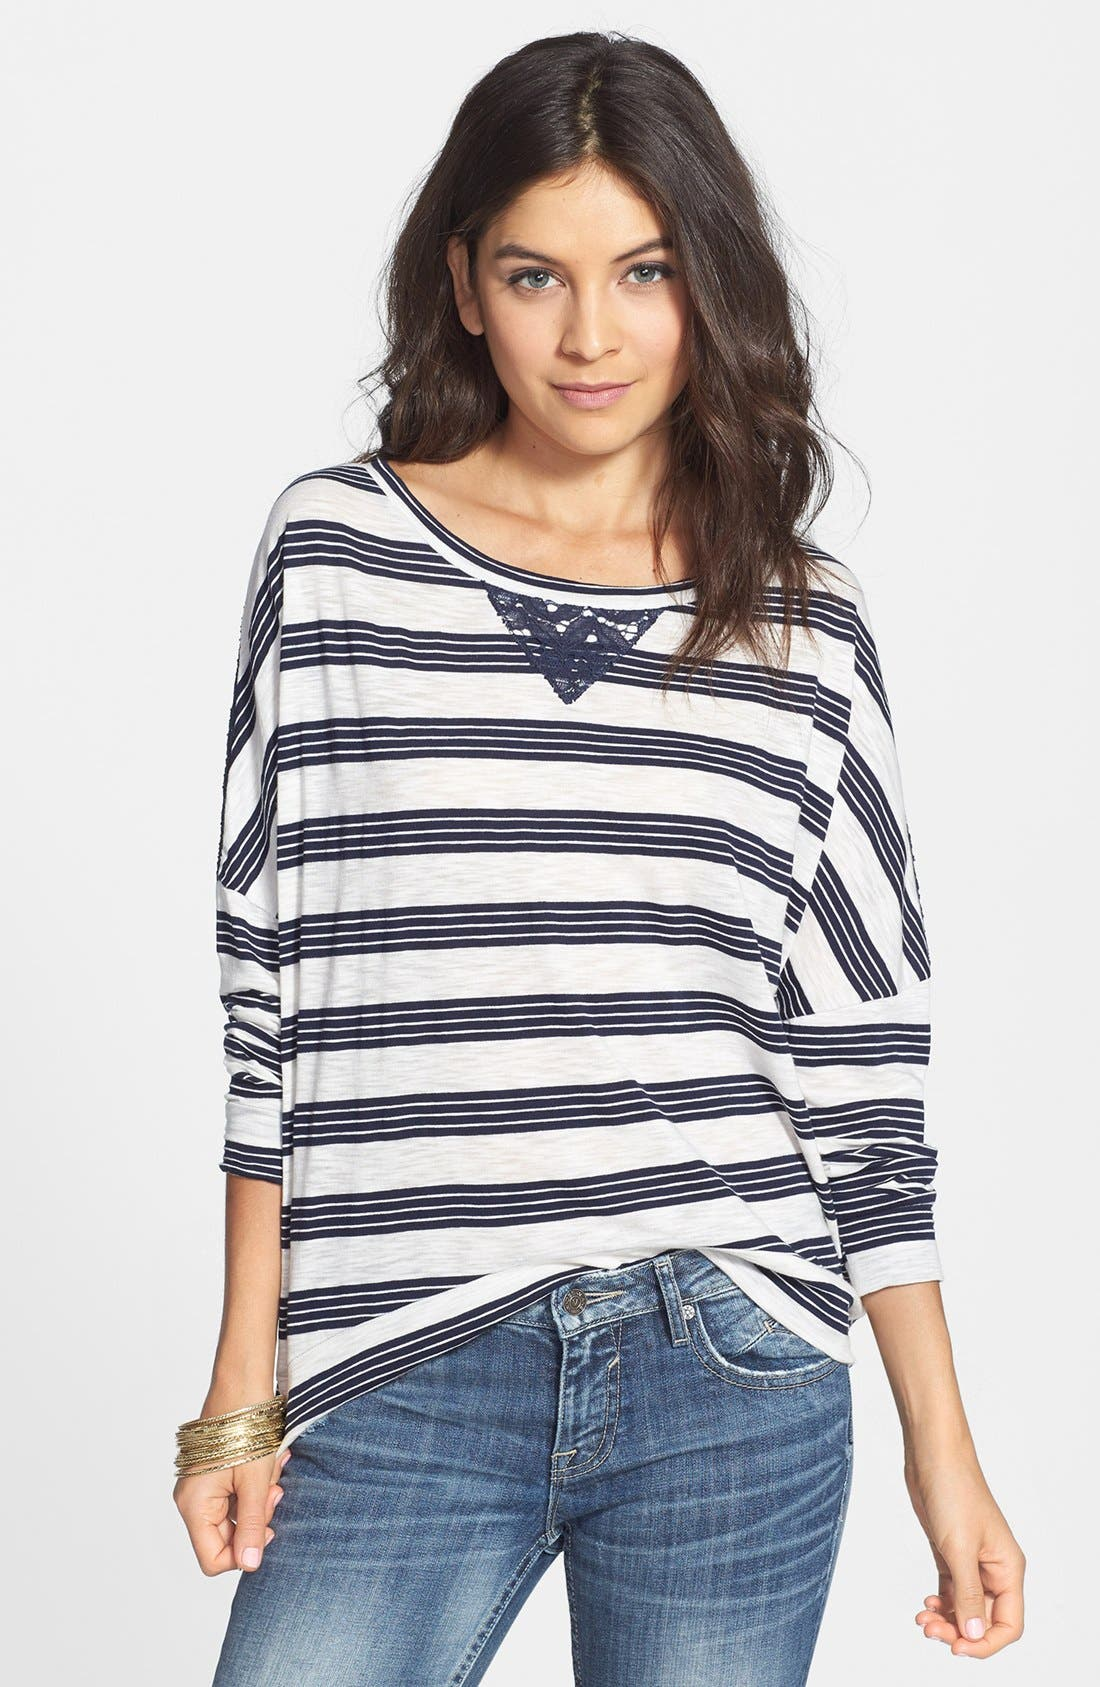 Alternate Image 1 Selected - Elodie Lace Yoke Stripe Oversized Tee (Juniors)